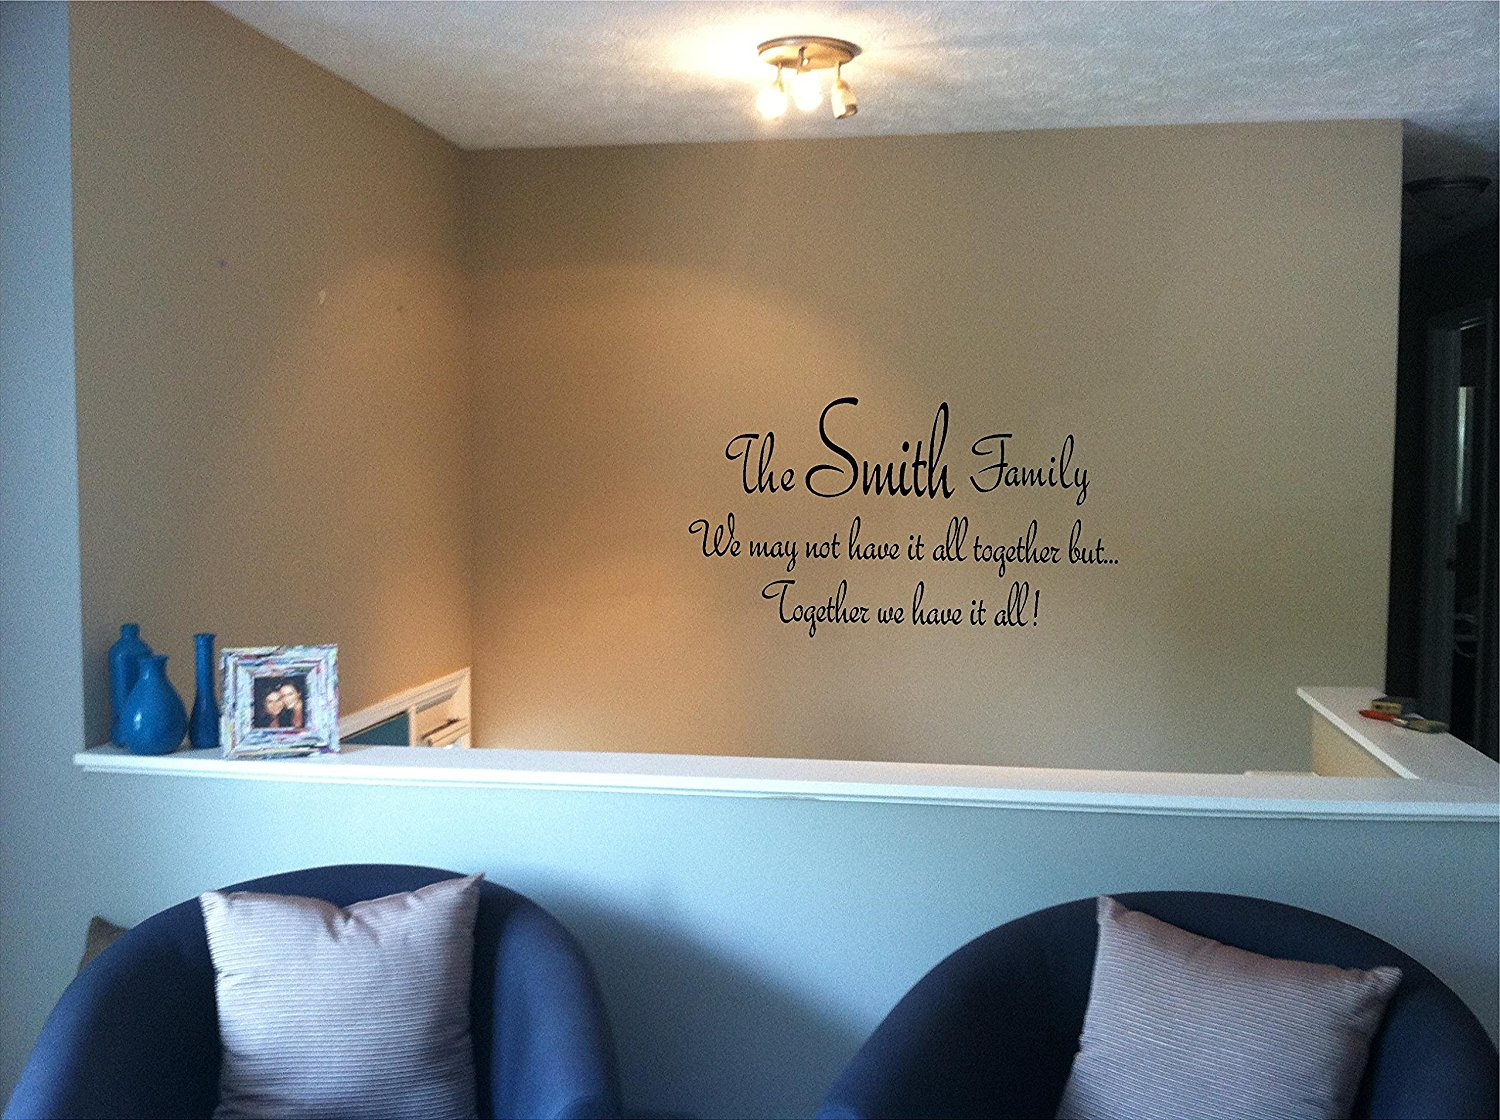 Quote It! - Family Name Together Personalized Wall Quote, Vinyl Wall Decals, Quotes, Sayings, Words, Art, Decals, Family Quotes, Family, Stickers, Home Decor, Wall Decor, Inspirational, Love